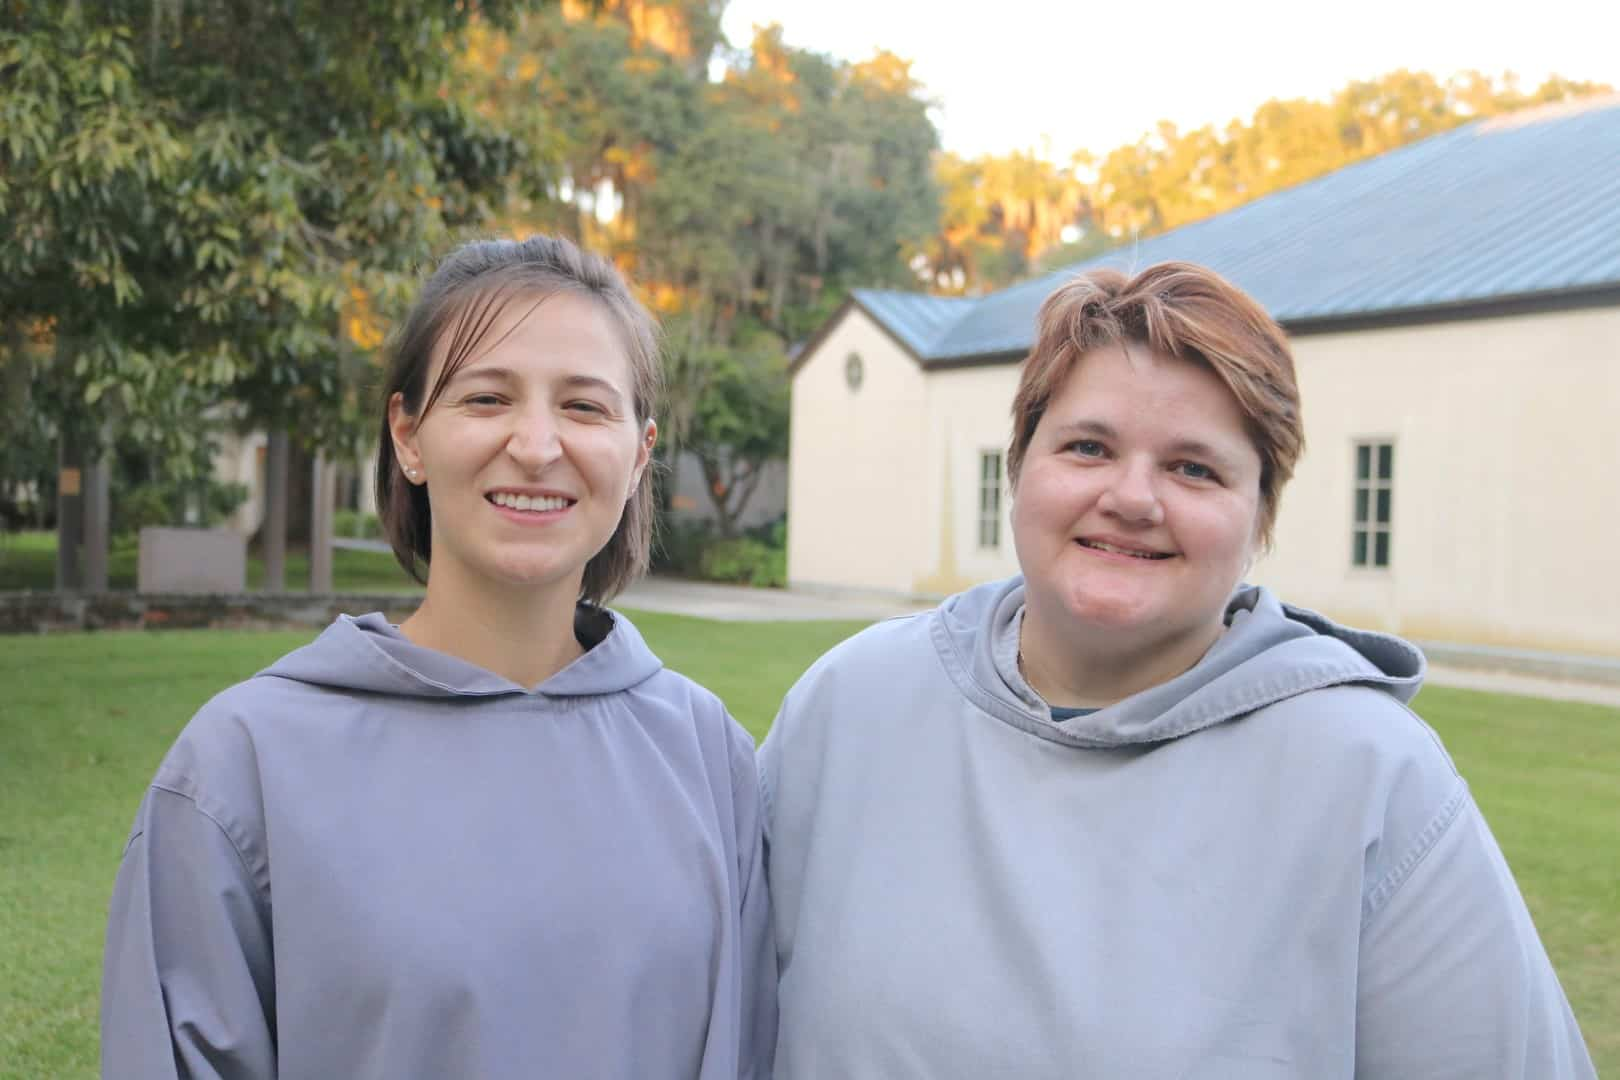 Tara and Emma: Just completed the Monastic Guest Program.